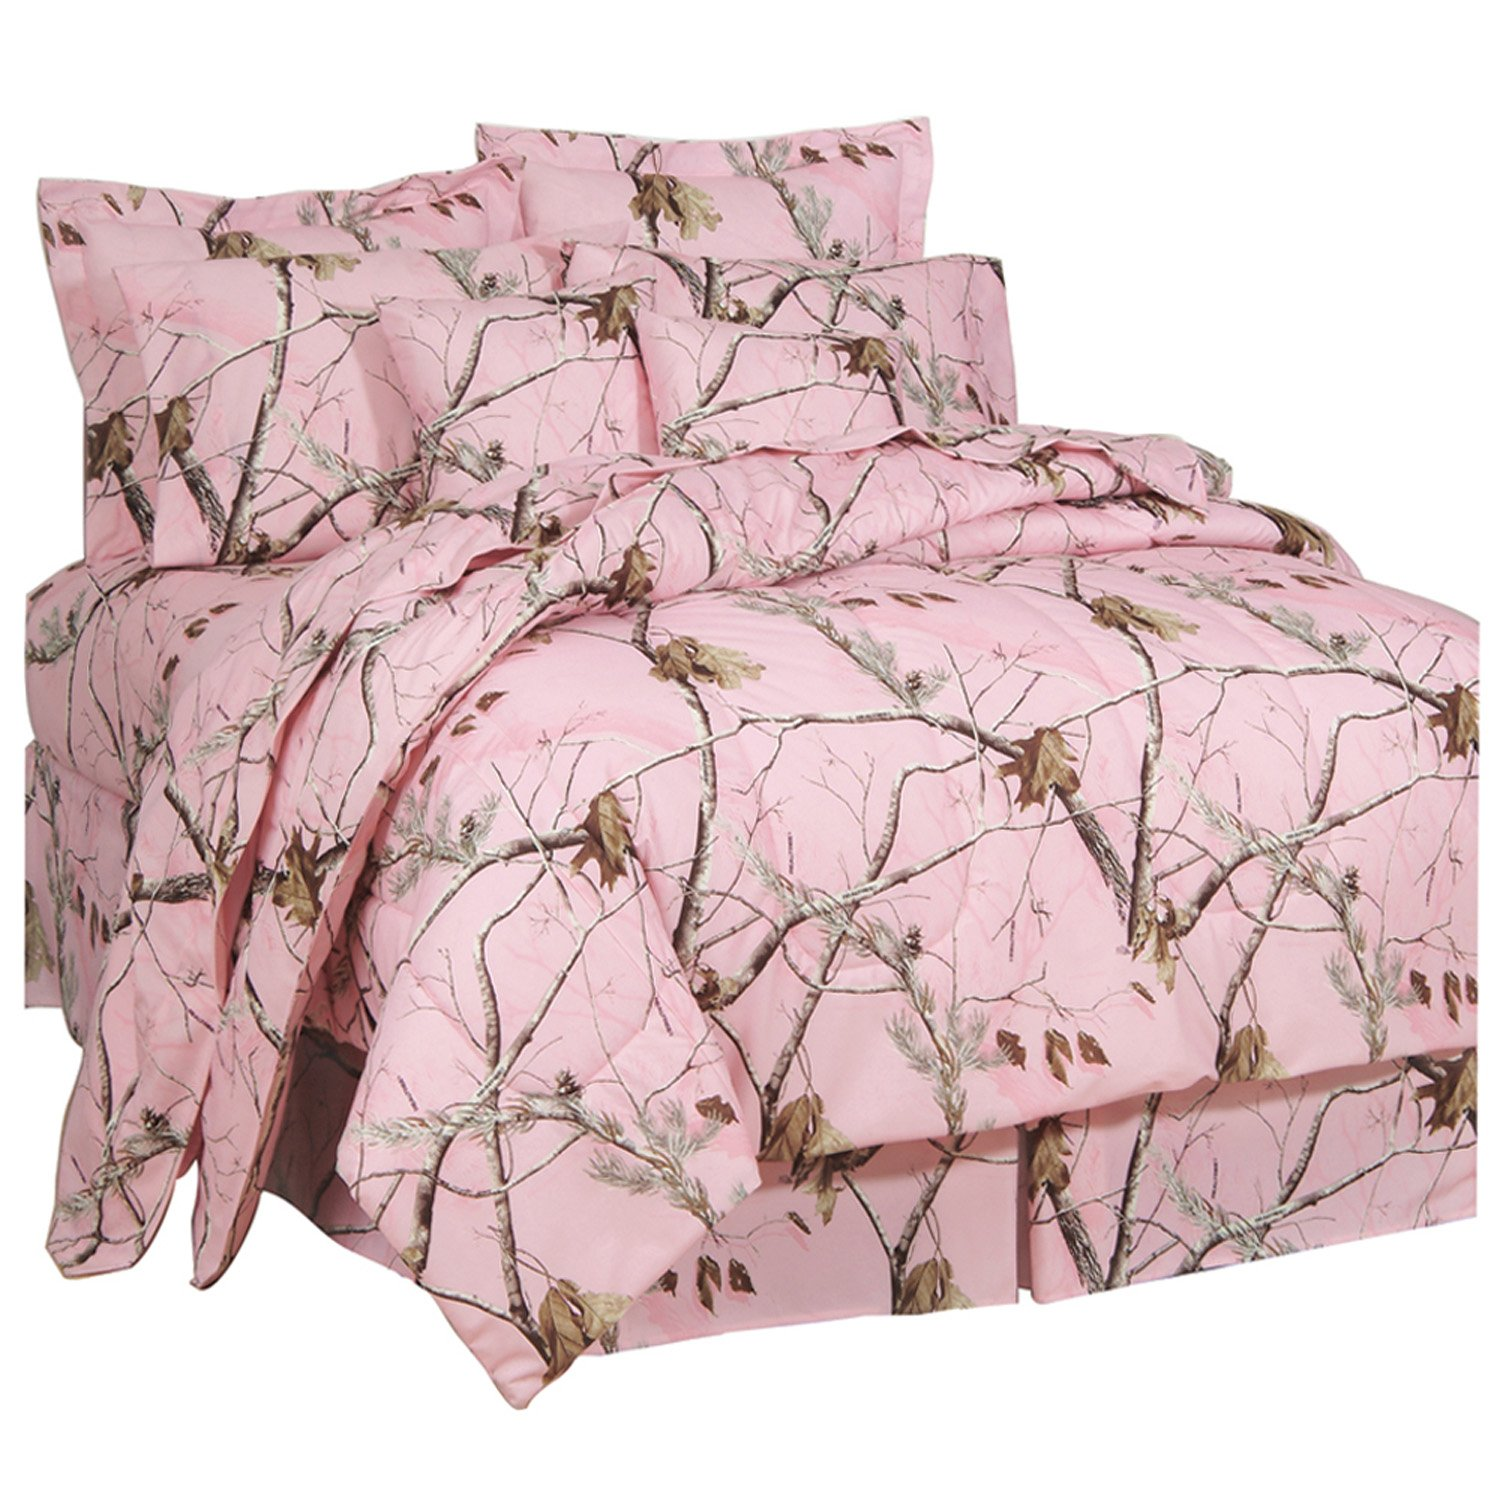 Pink camo bedding twin - Pink Camo Bedding Twin 12